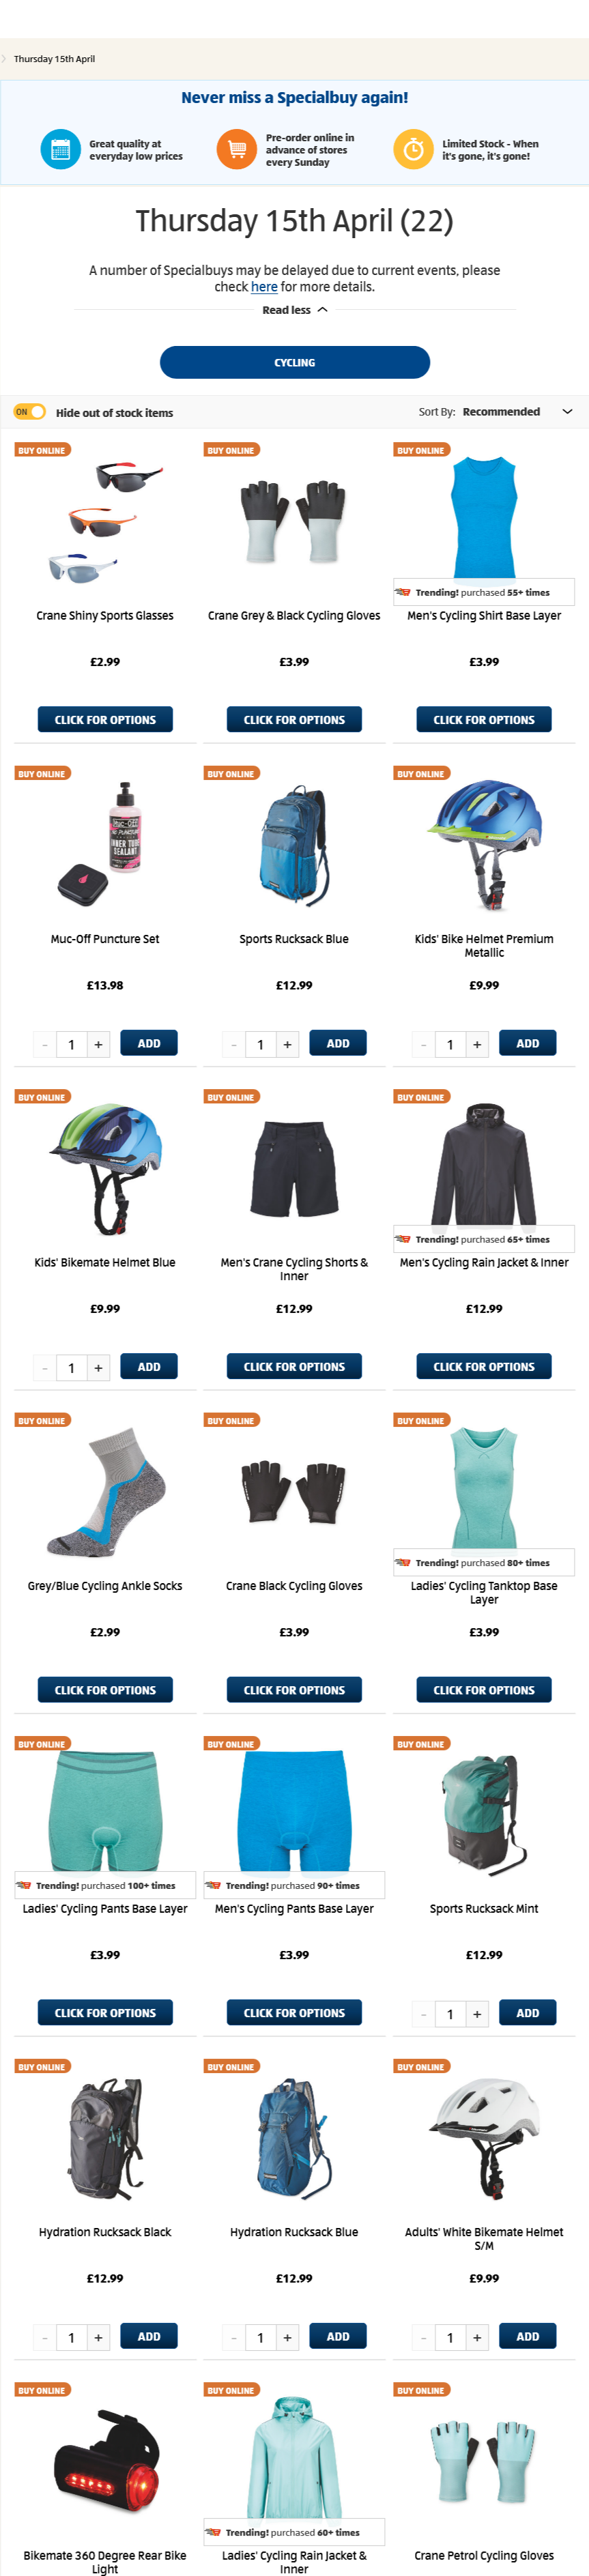 ALDI Cycling from 15th April 2021 ALDI Thursday Offers